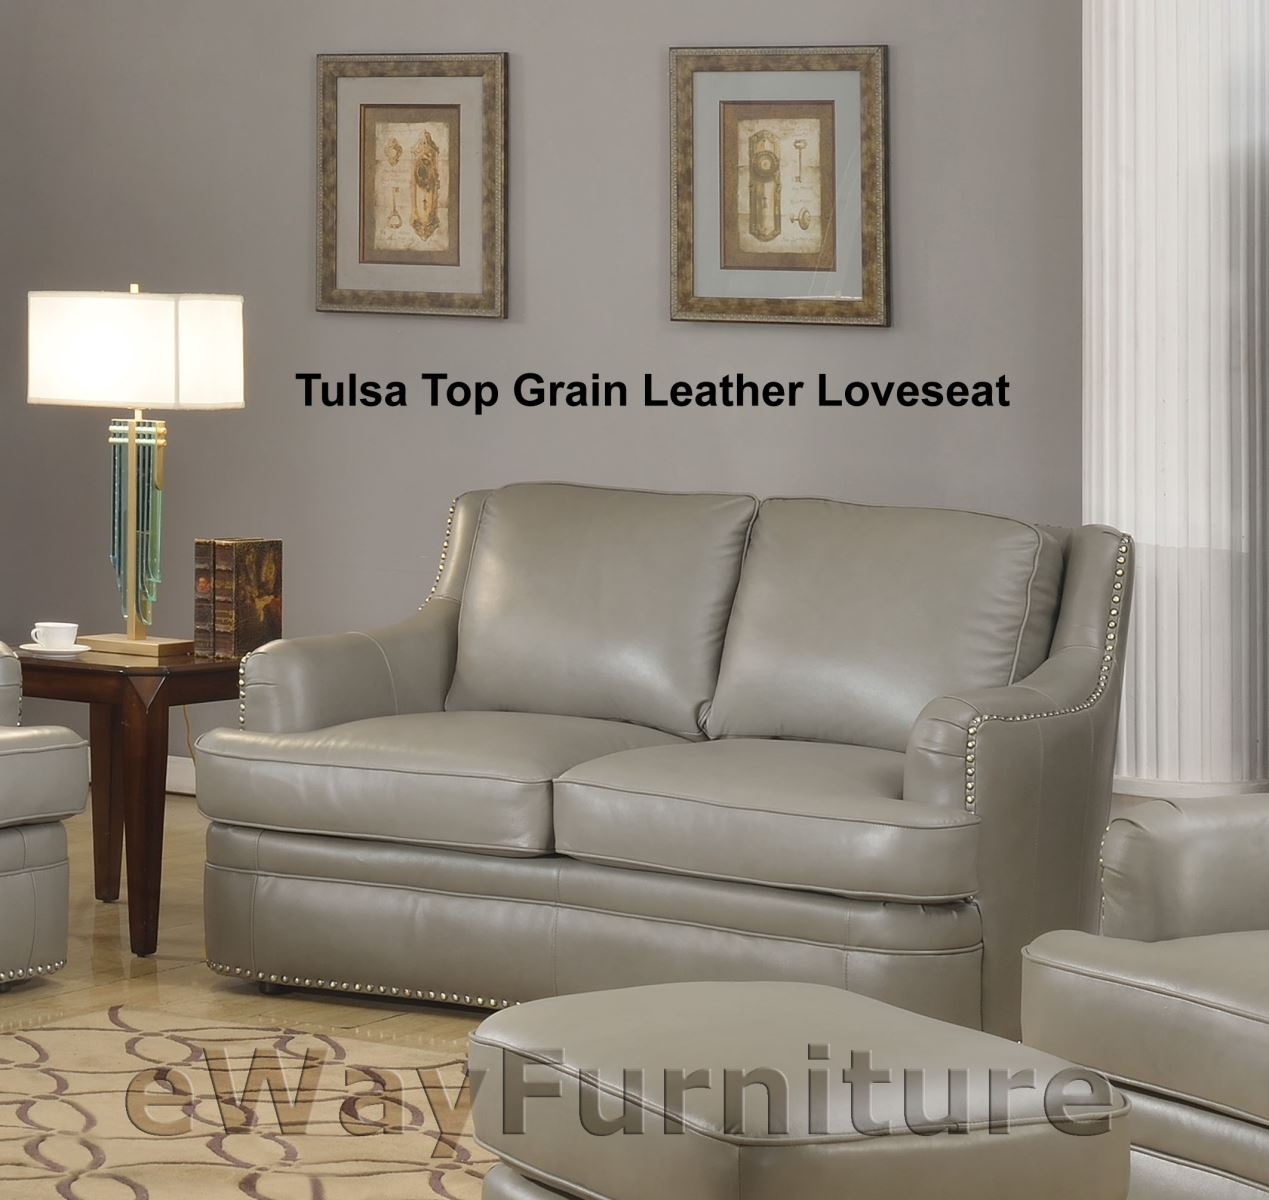 Tulsa Dark Grey Top Grain Leather Loveseat Living Room Furniture Online EBay